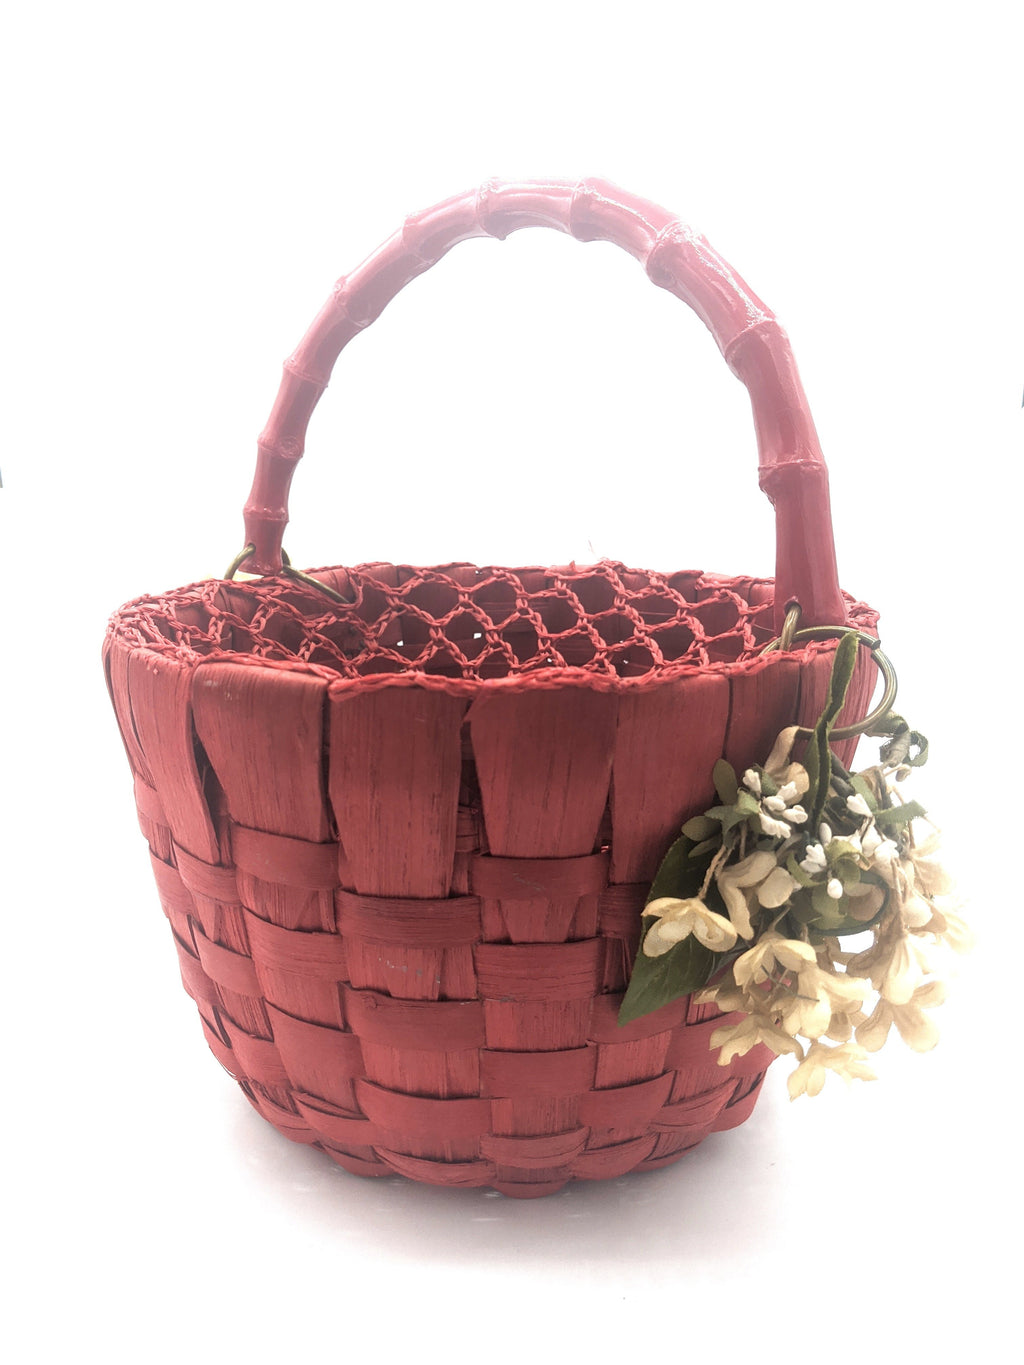 50s Purse Red Basket with Net Cover FRONT 1 of 4